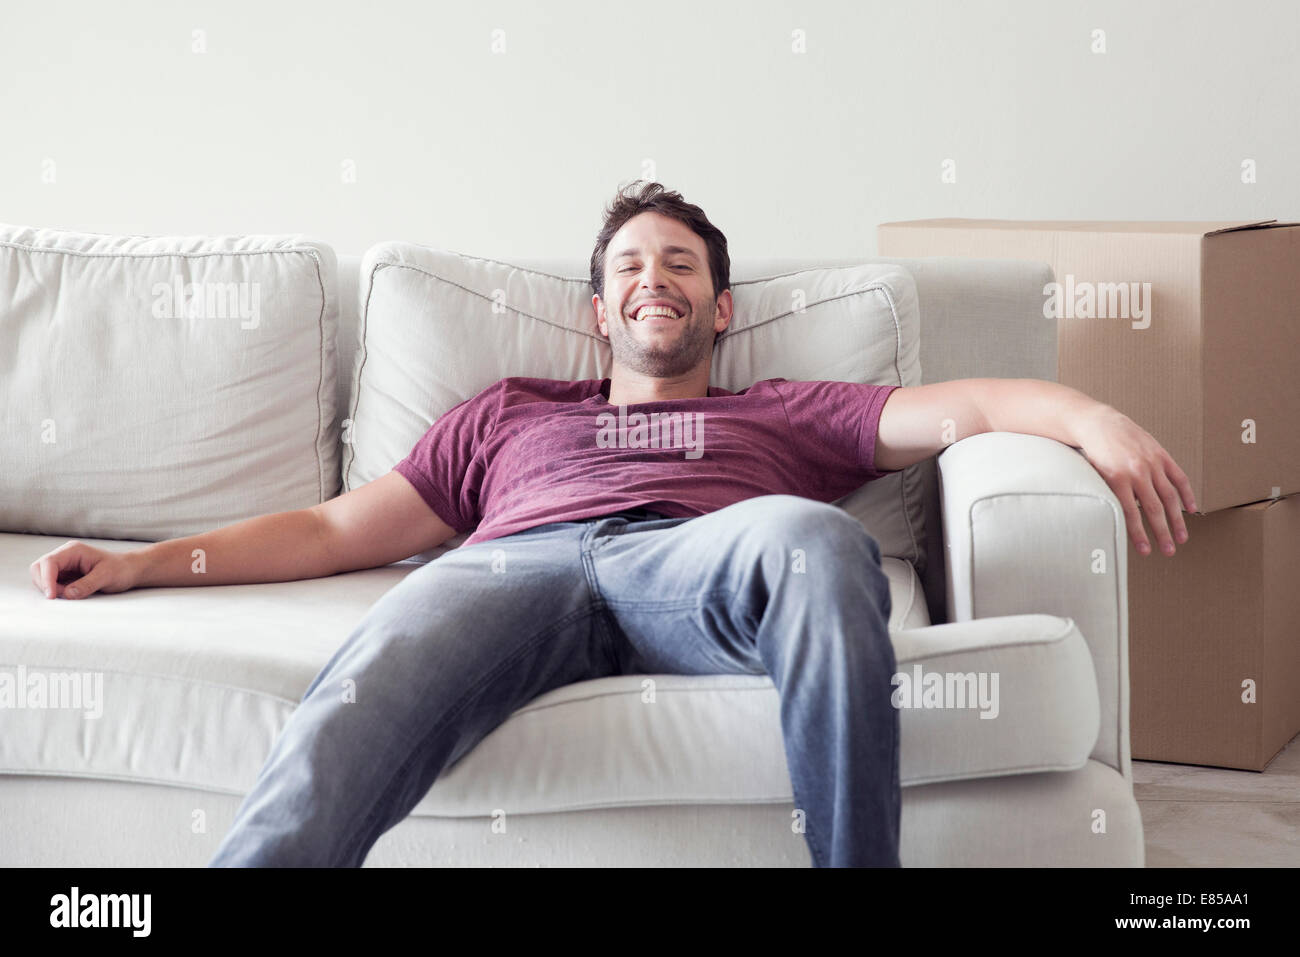 Man relaxing on sofa while moving house - Stock Image